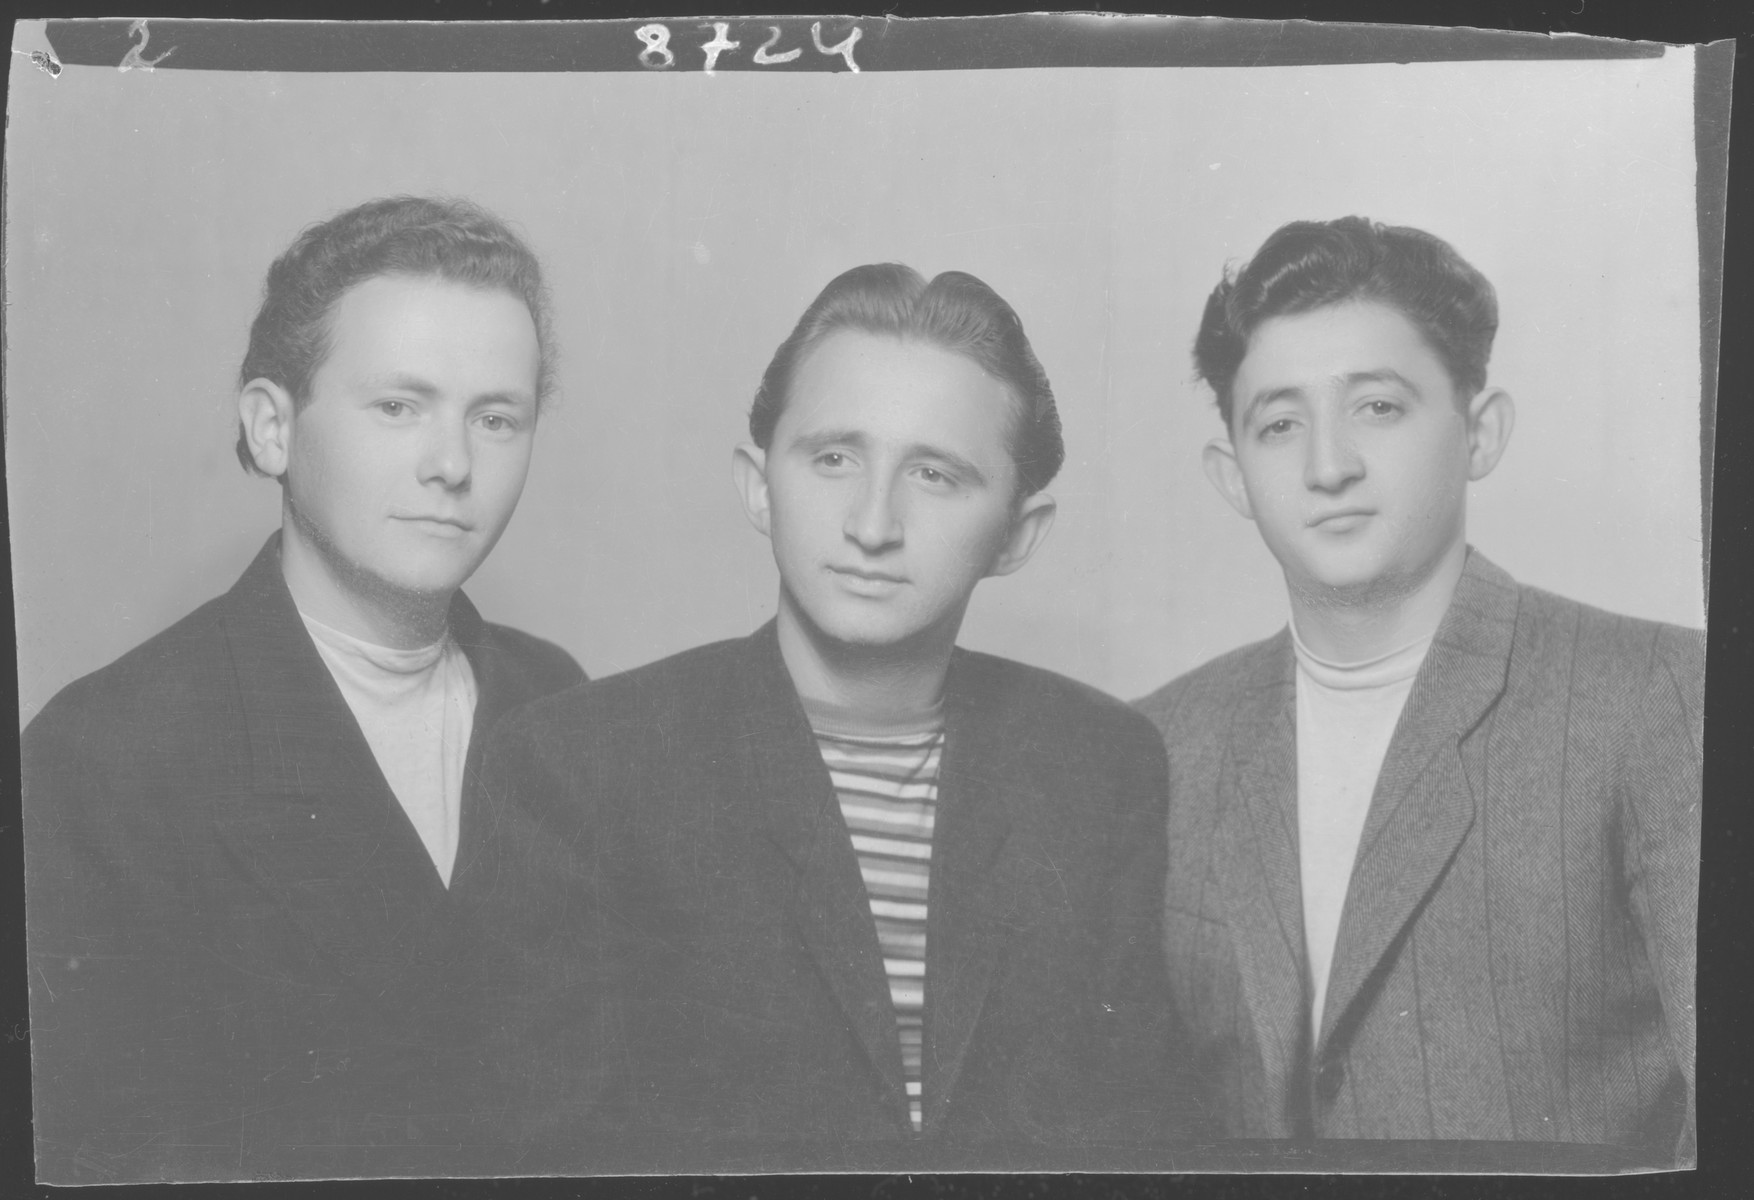 Studio portrait of Zolta Grunfeld and two other young men.